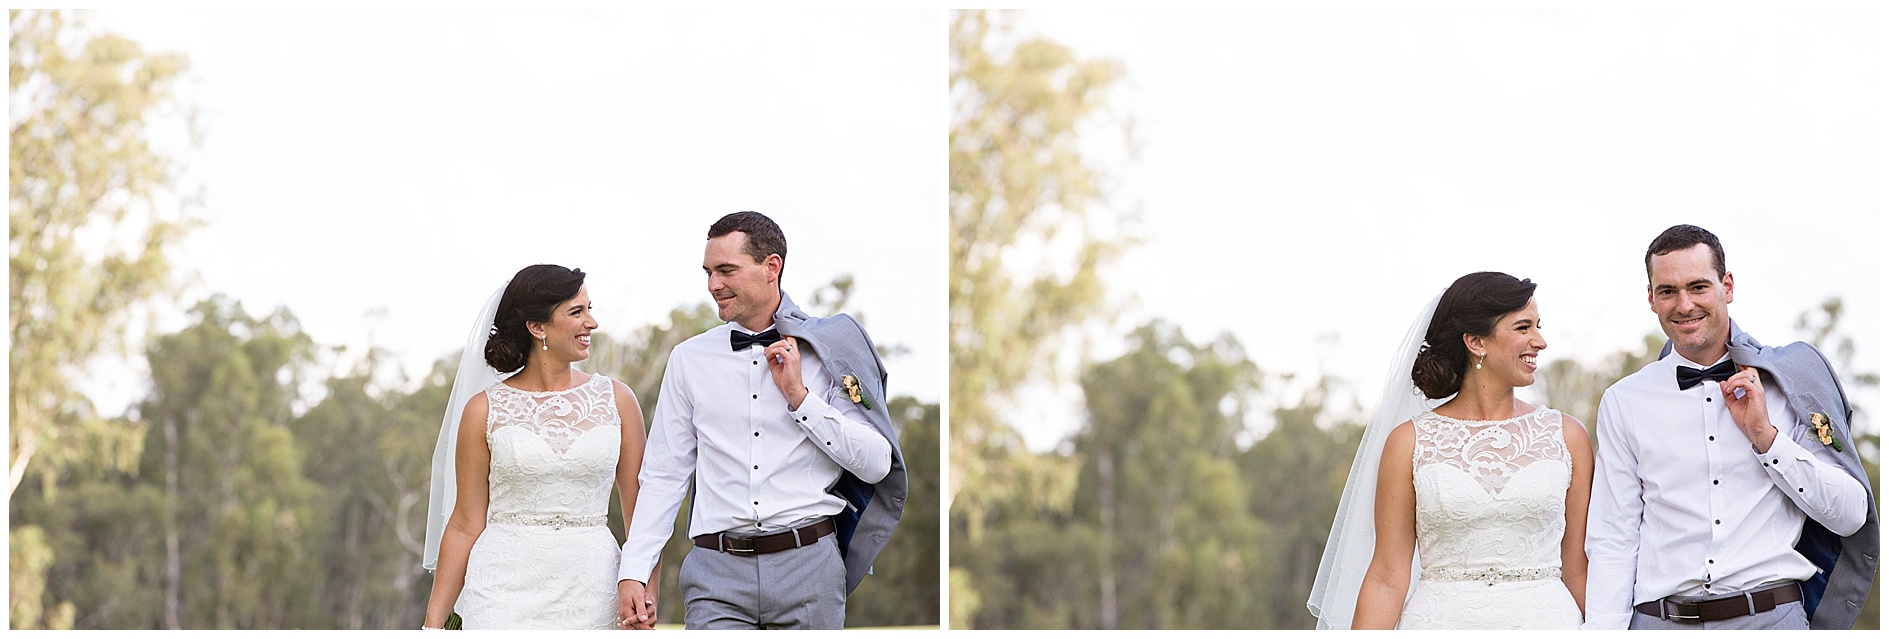 yarrawonga-wedding-photographer_0079.jpg